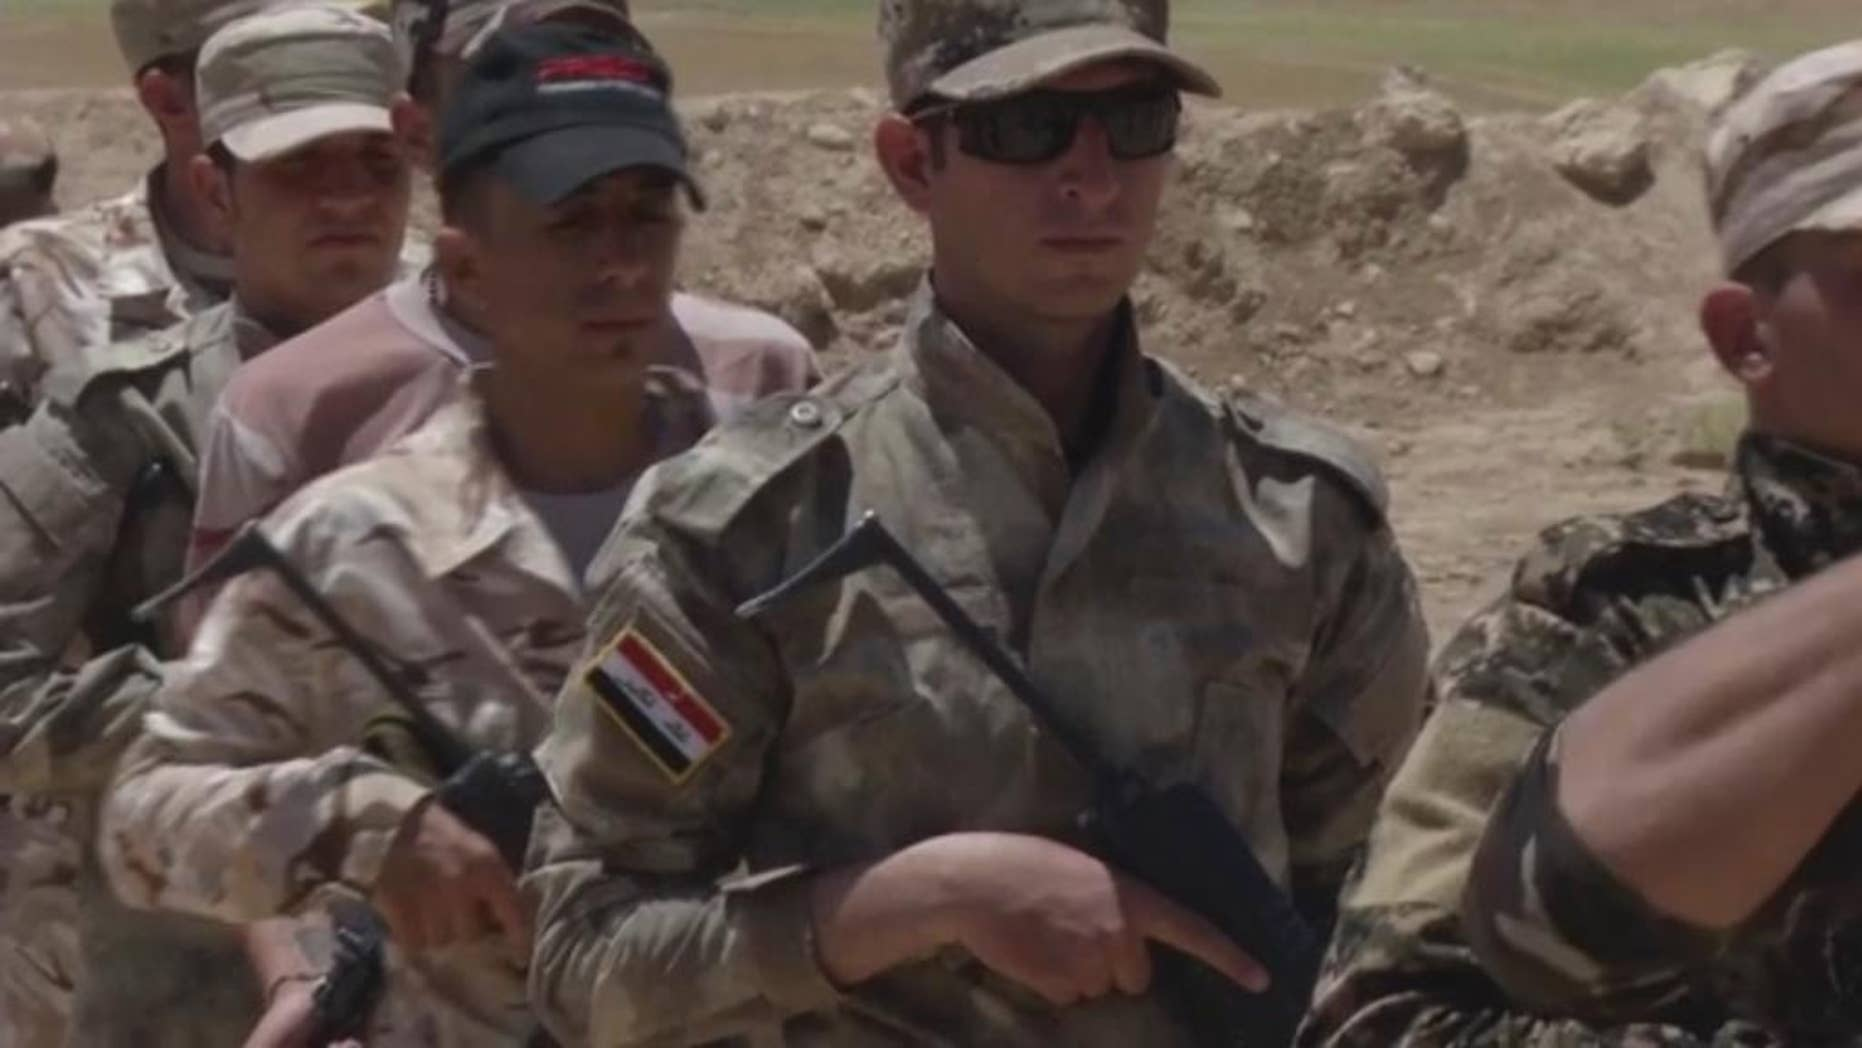 In this video grab made on Tuesday, June 14, 2016, in Alqoosh, Iraq, shows Assyrian Christian militiamen during a training. The group also know as the Nineveh Plain Protection Units, or NPU, are one of three Christian armed groups who are hoping for American support after the U.S. House of Representatives called for direct assistance to be delivered to local security forces in the north of Iraq. (AP Photo/ Balint Szlanko)